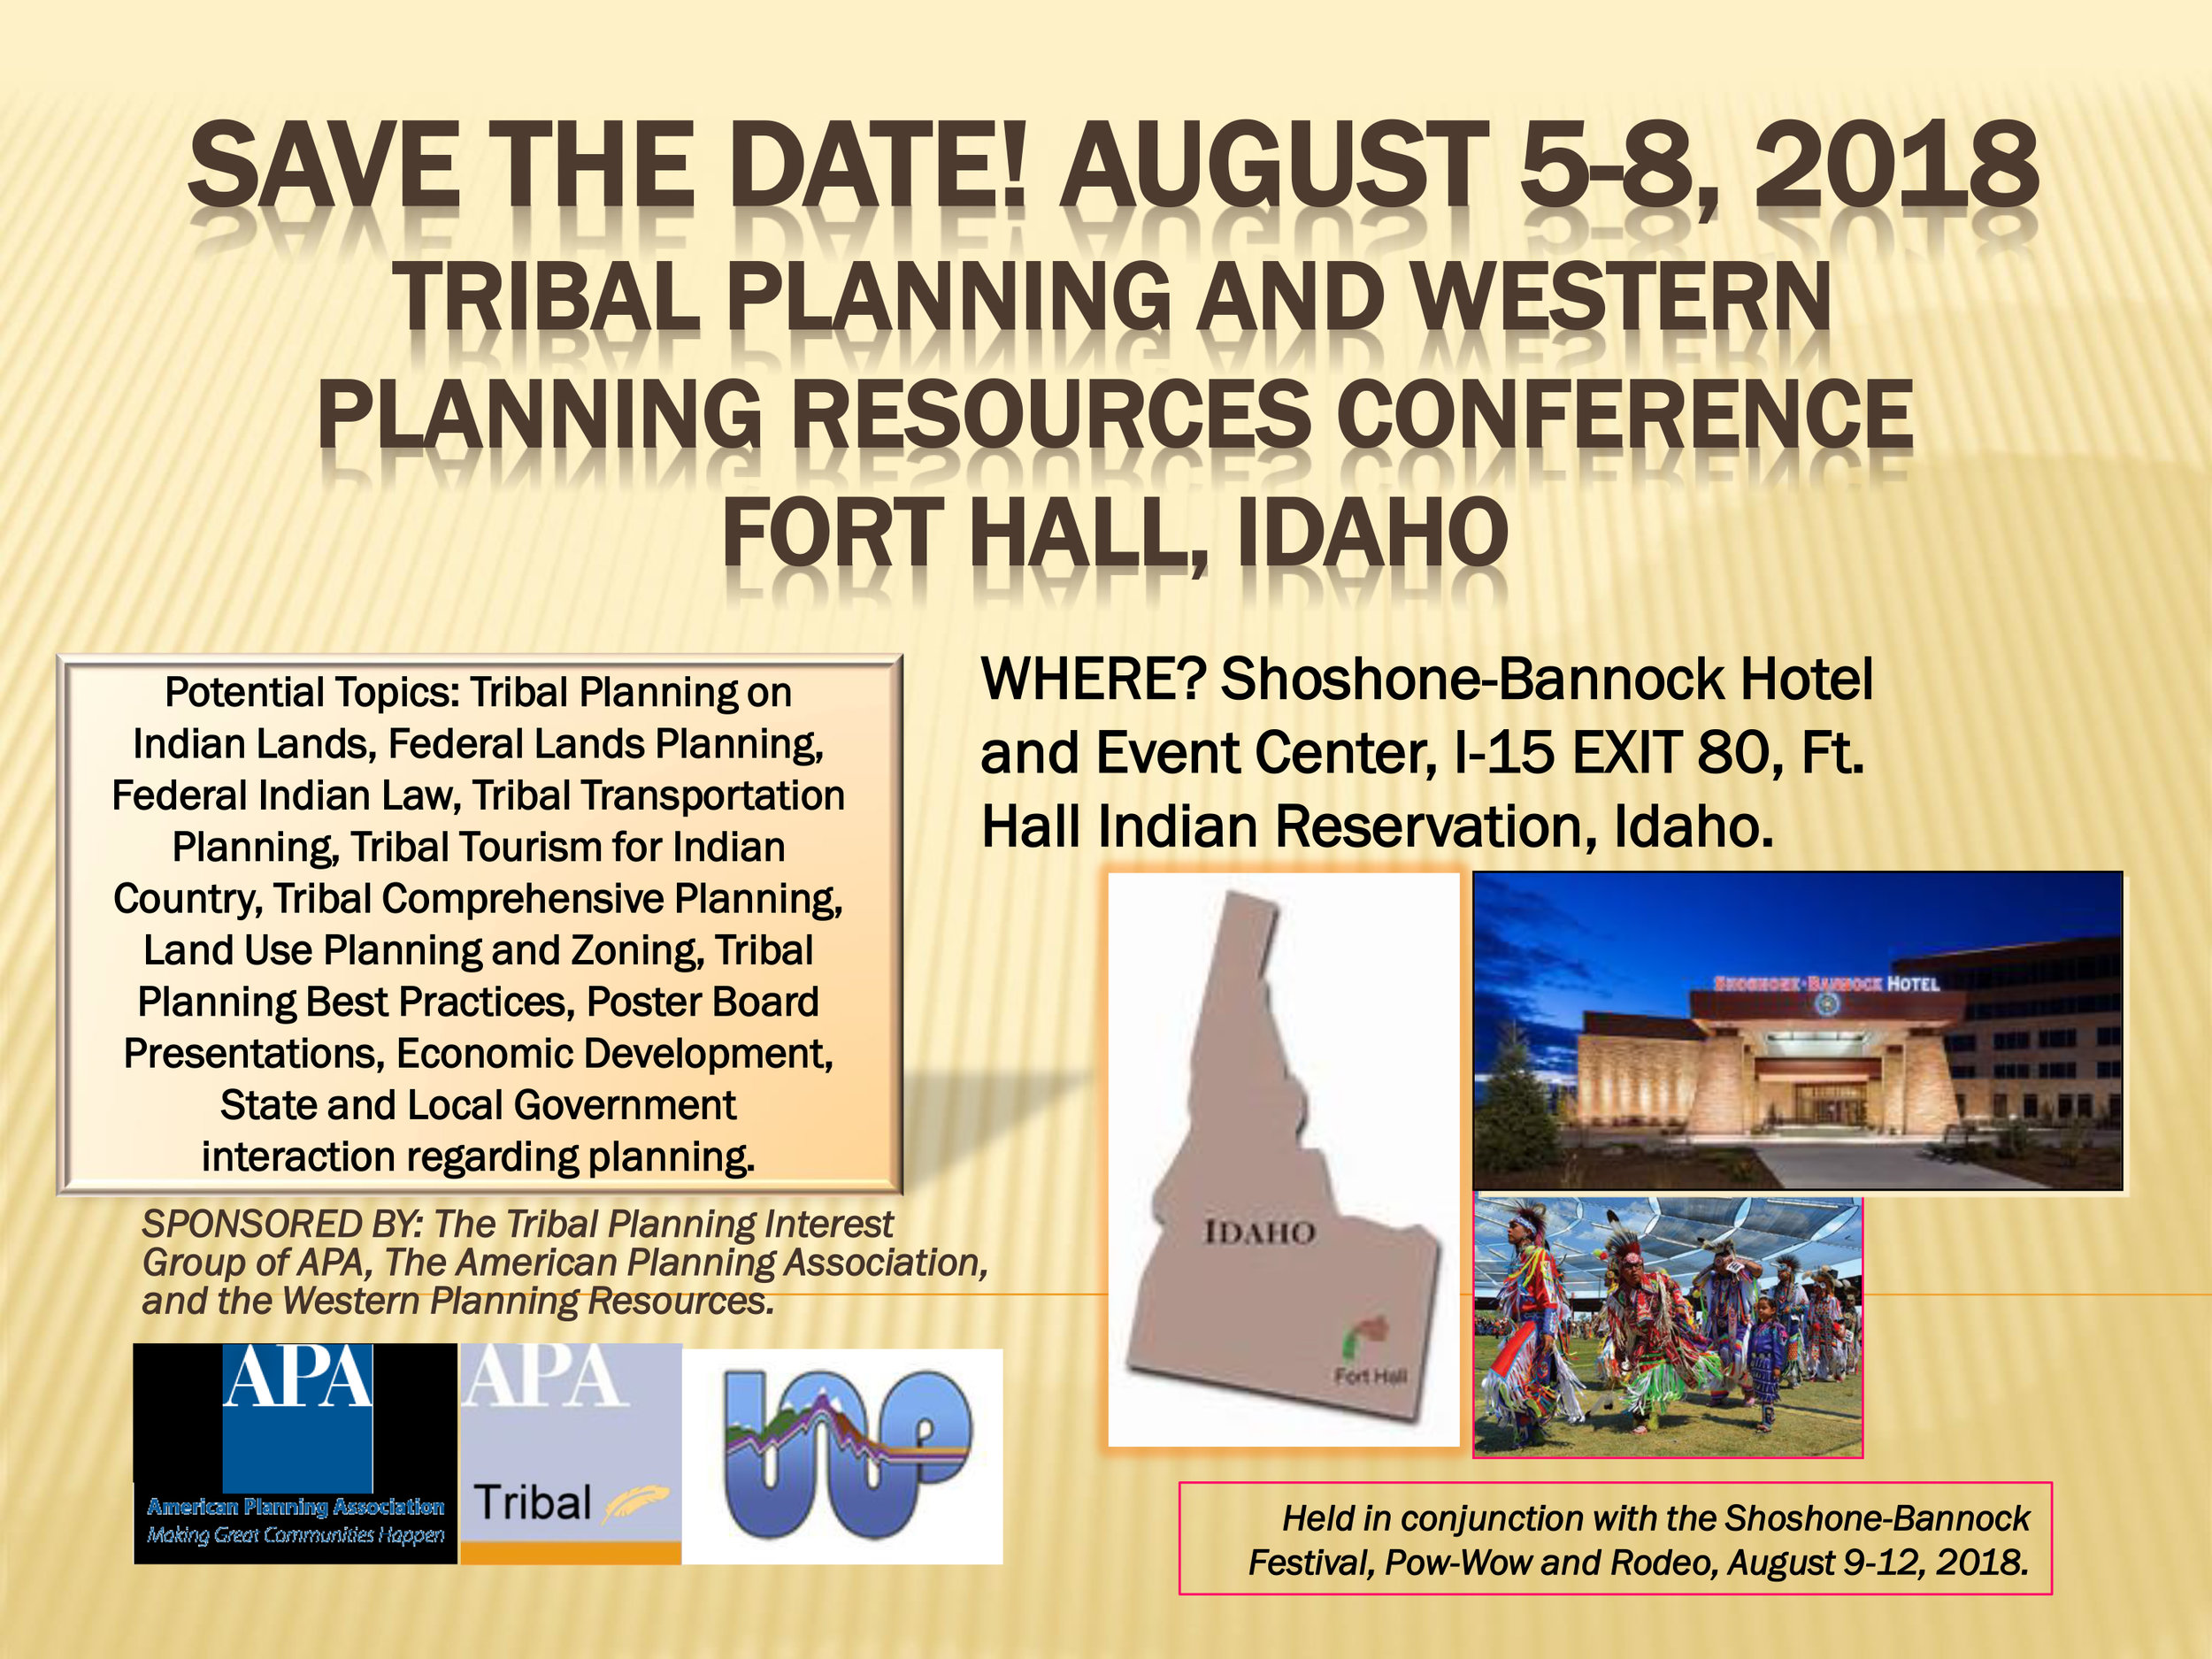 SAVE THE DATE! Tribal Planning and WPR Conference.jpg